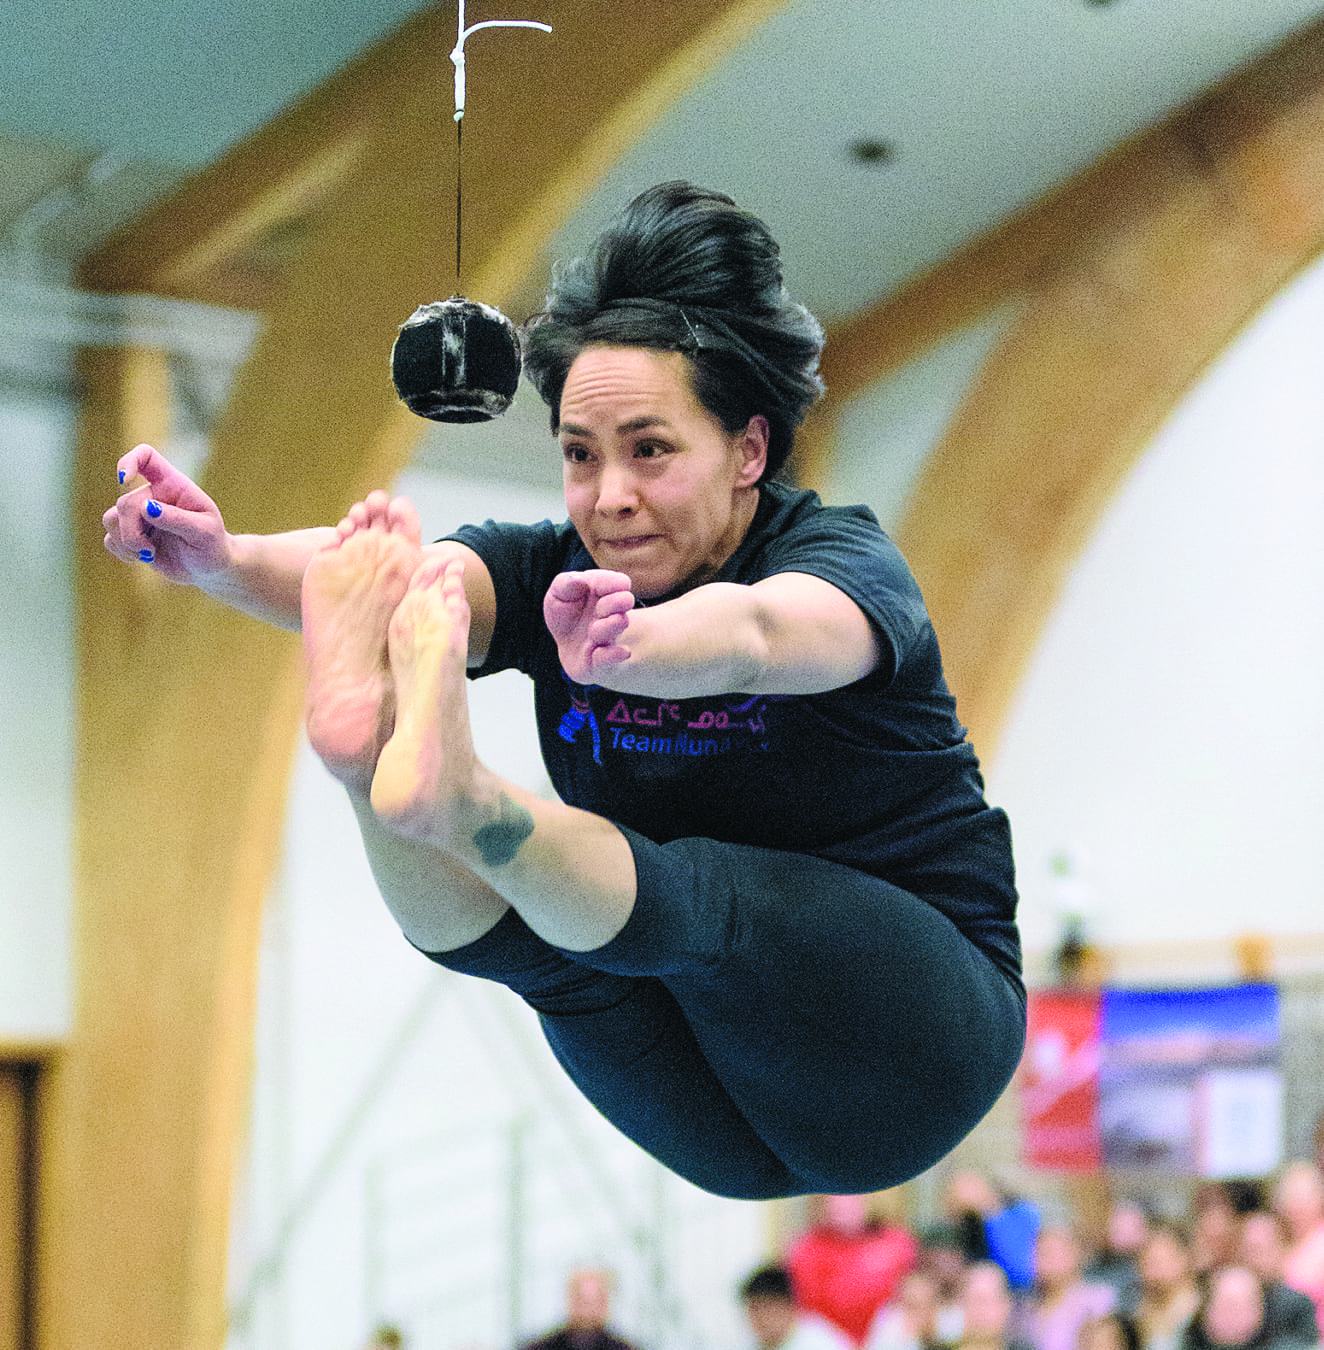 Iqaluit's Susie Pearce keeps her eyes on the target during two-foot high-kick competition at the 2016 Arctic Winter Games in Nuuk, Greenland. Pearce has been one of the best female athletes in Nunavut for quite some time. NNSL file photo